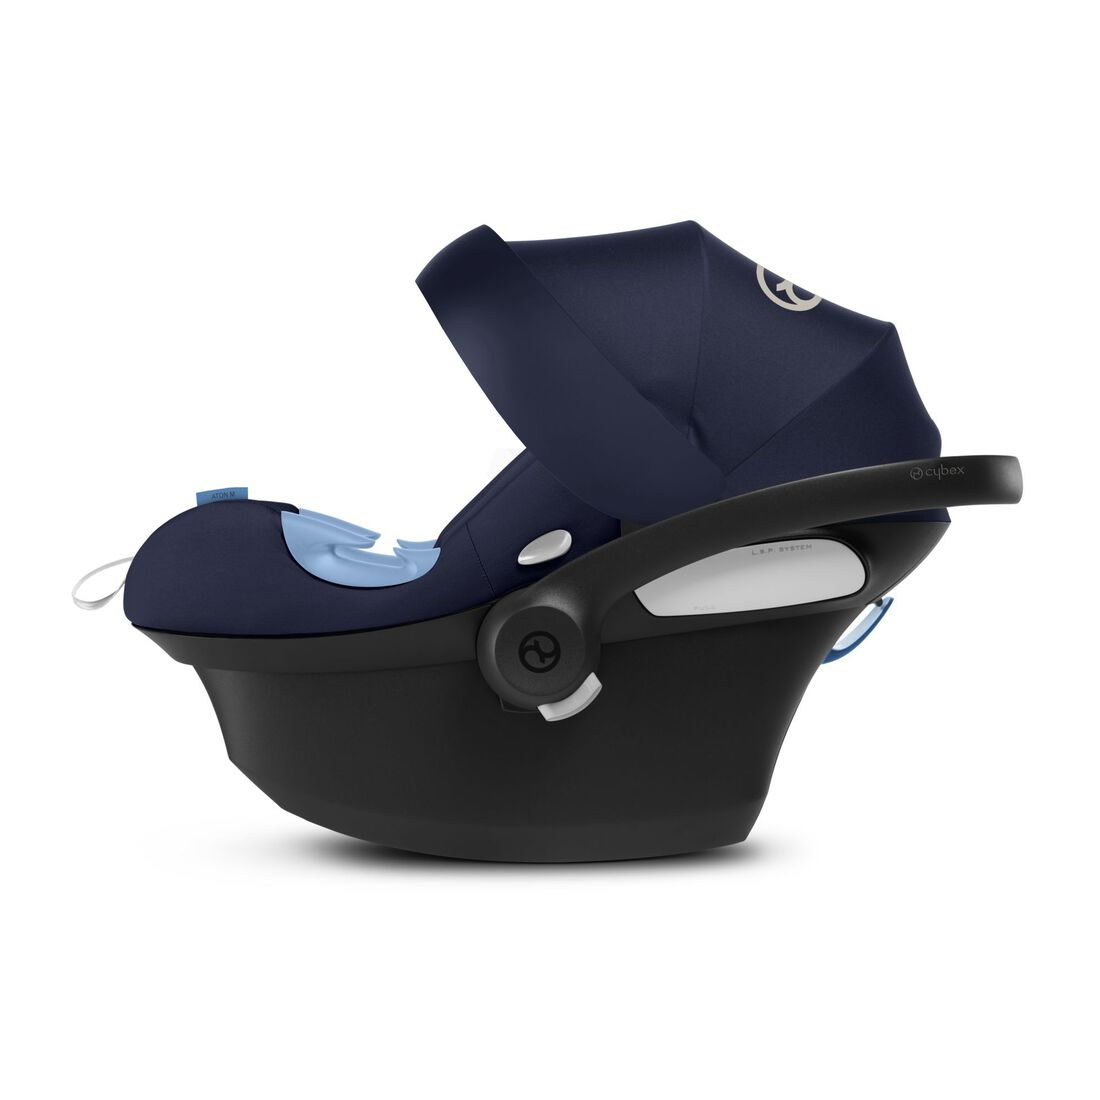 CYBEX Aton M i-Size - Navy Blue in Navy Blue large Bild 5